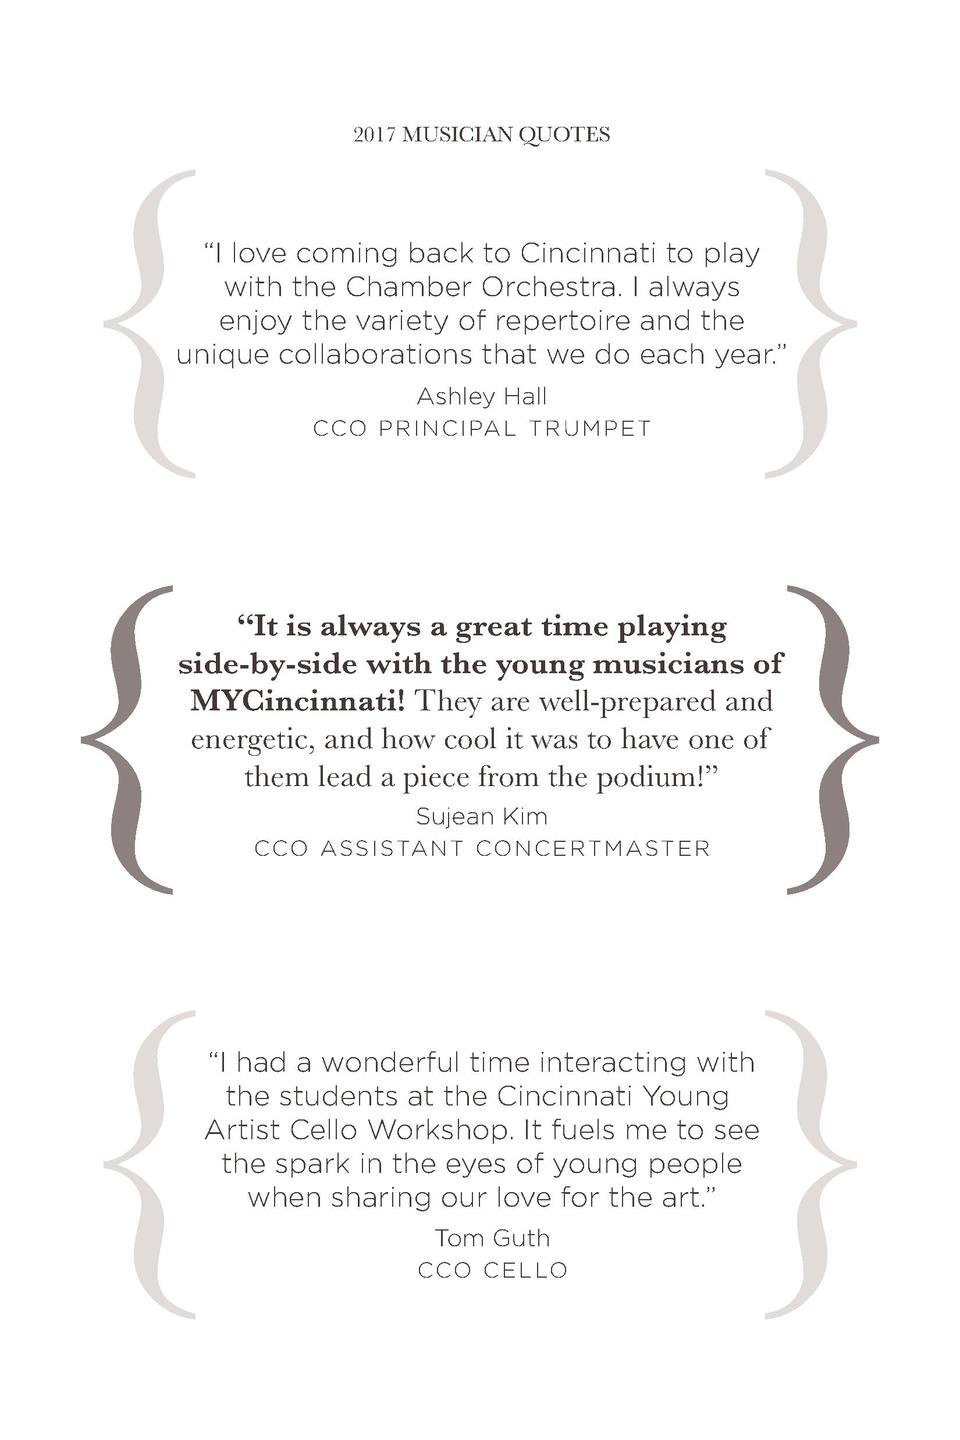 2017 MUSICIAN QUOTES            I love coming back to Cincinnati to play with the Chamber Orchestra. I always enjoy...